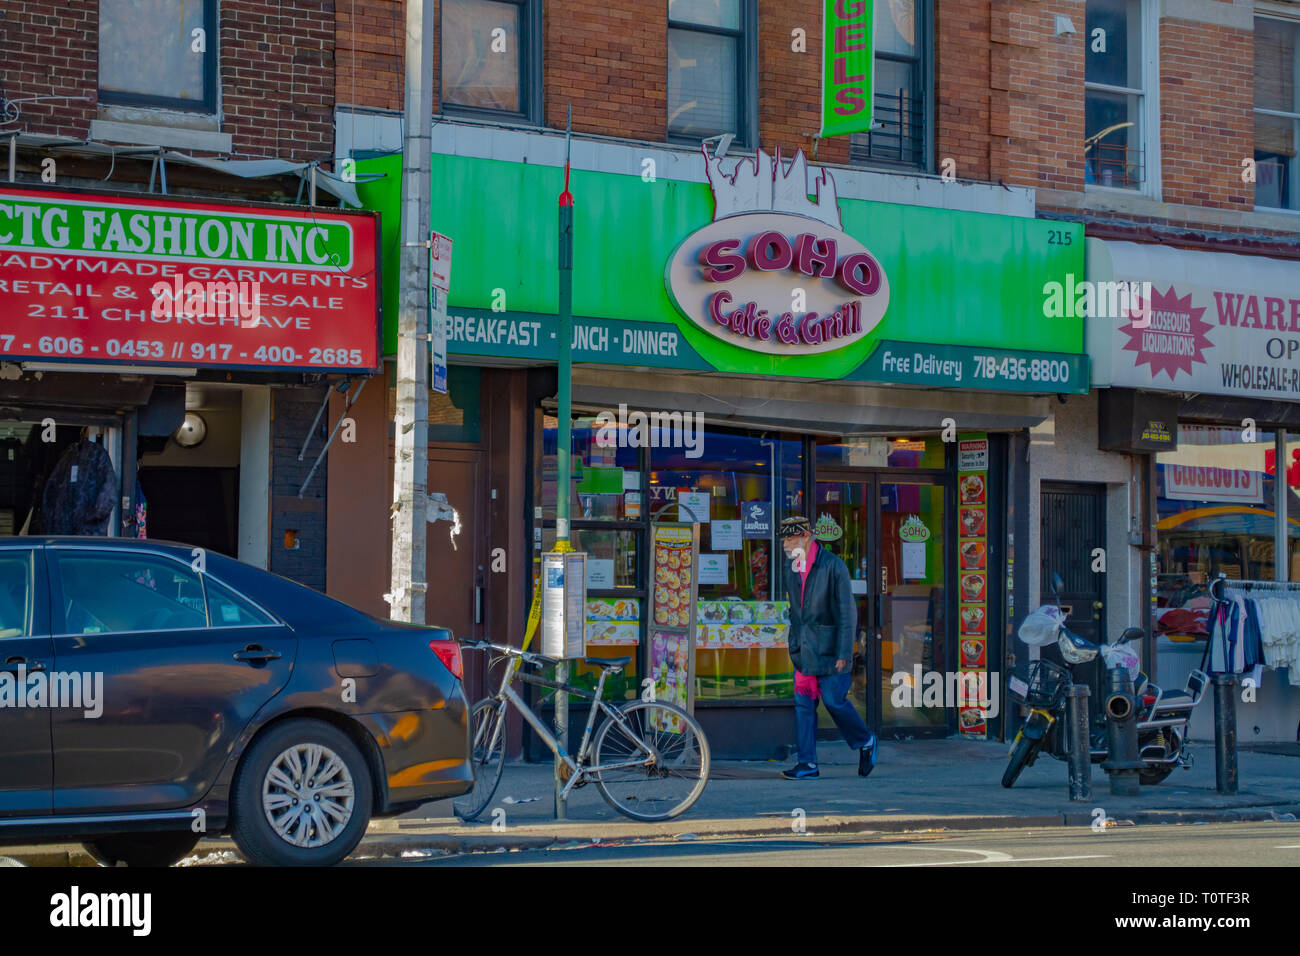 Bangladeshi man is walking through the streets of Brooklyn near the Soho Cafe and Grill. Brooklyn, NY spring 2019 - Stock Image